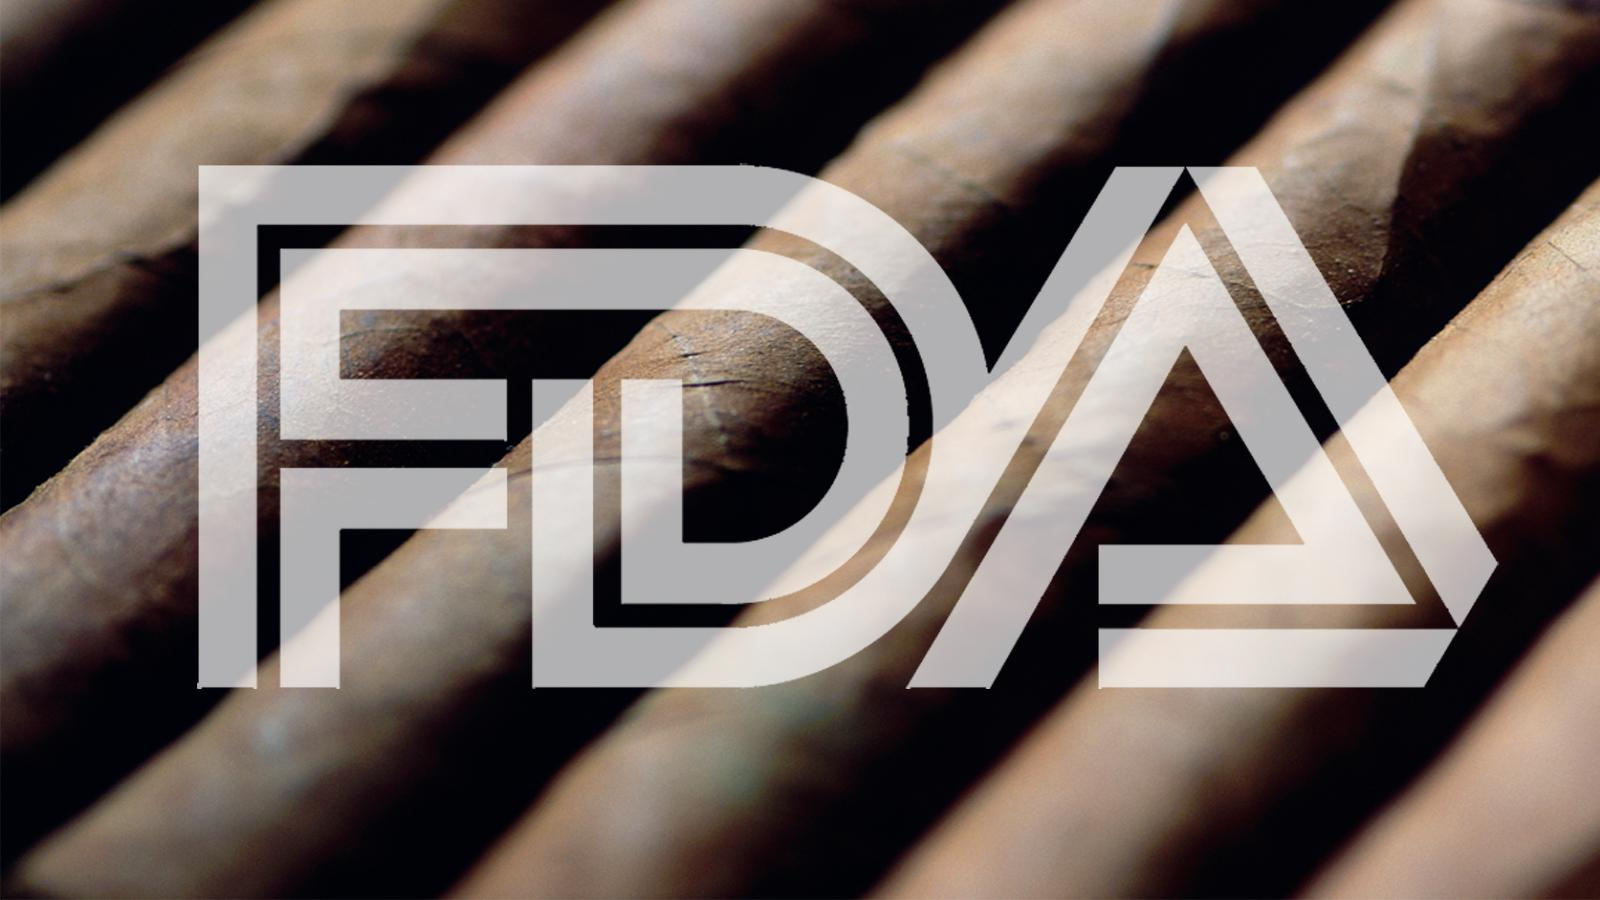 FDA Extends Final Rule Compliance Deadlines By 90 Days